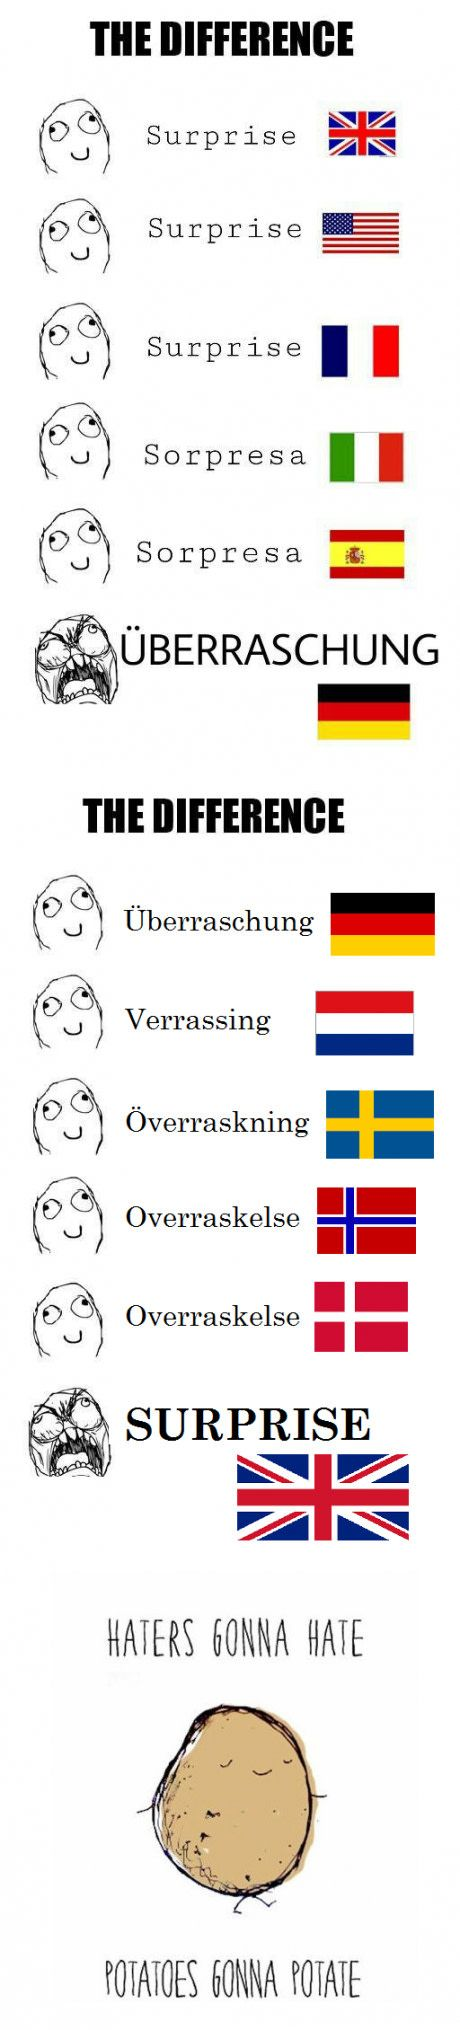 And then we have finnish.... said someone somewhere :-D